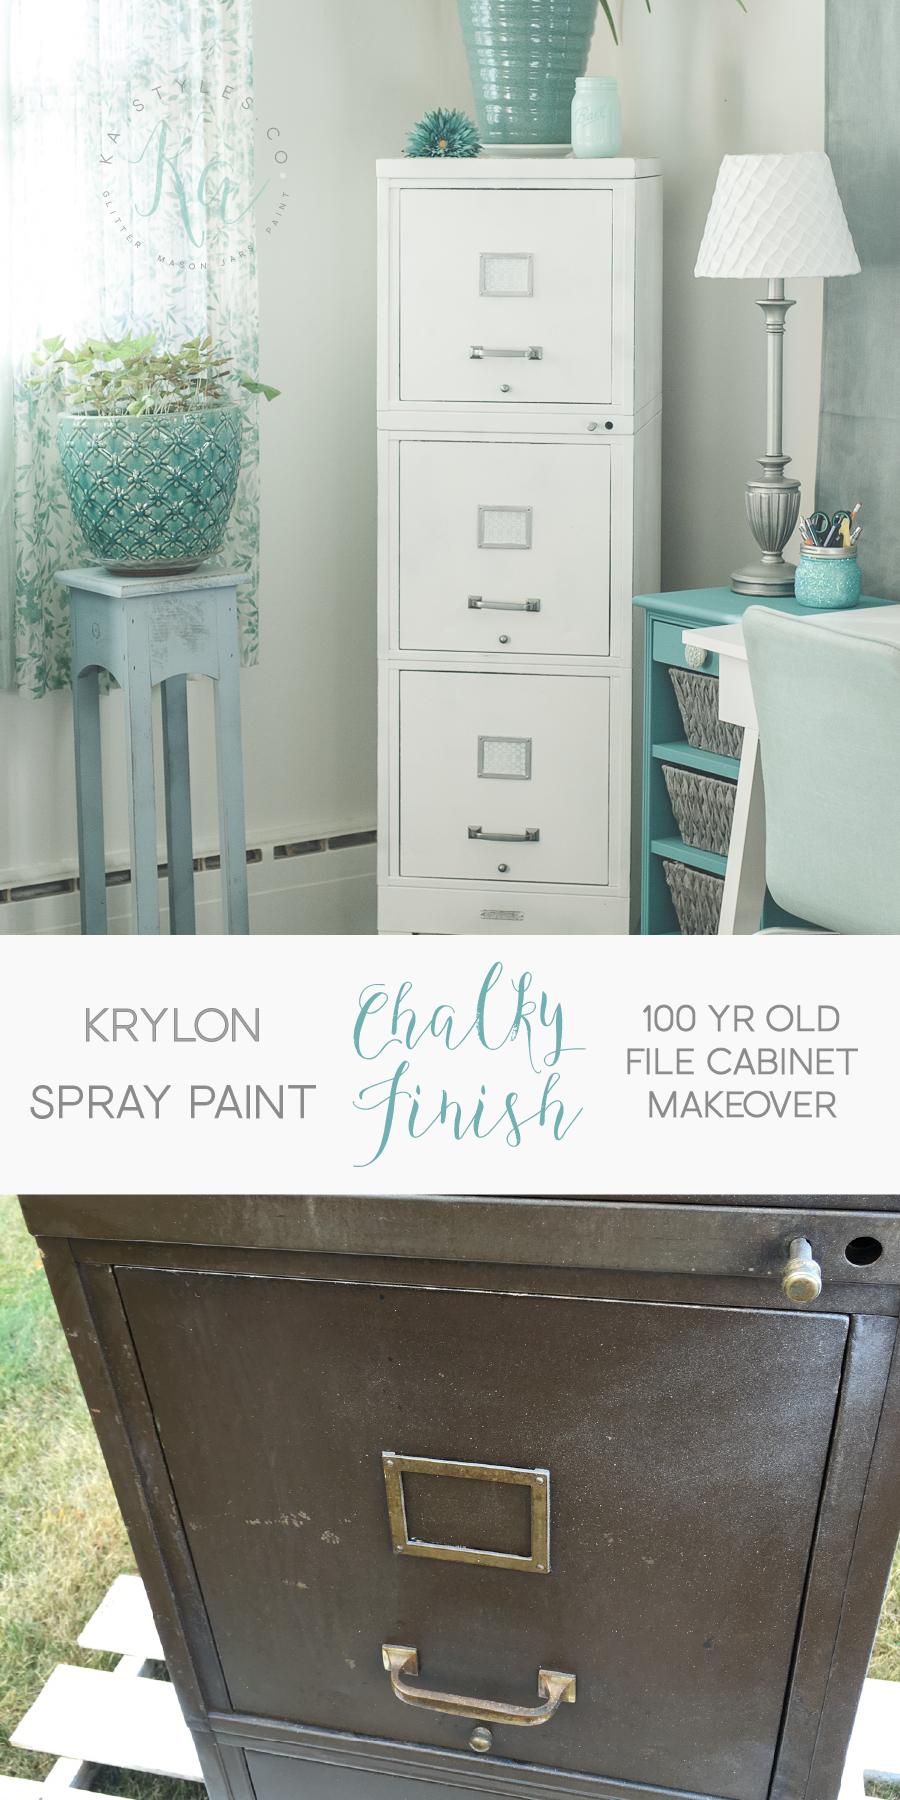 Krylon Chalky Finish spray paint file cabinet makeover.